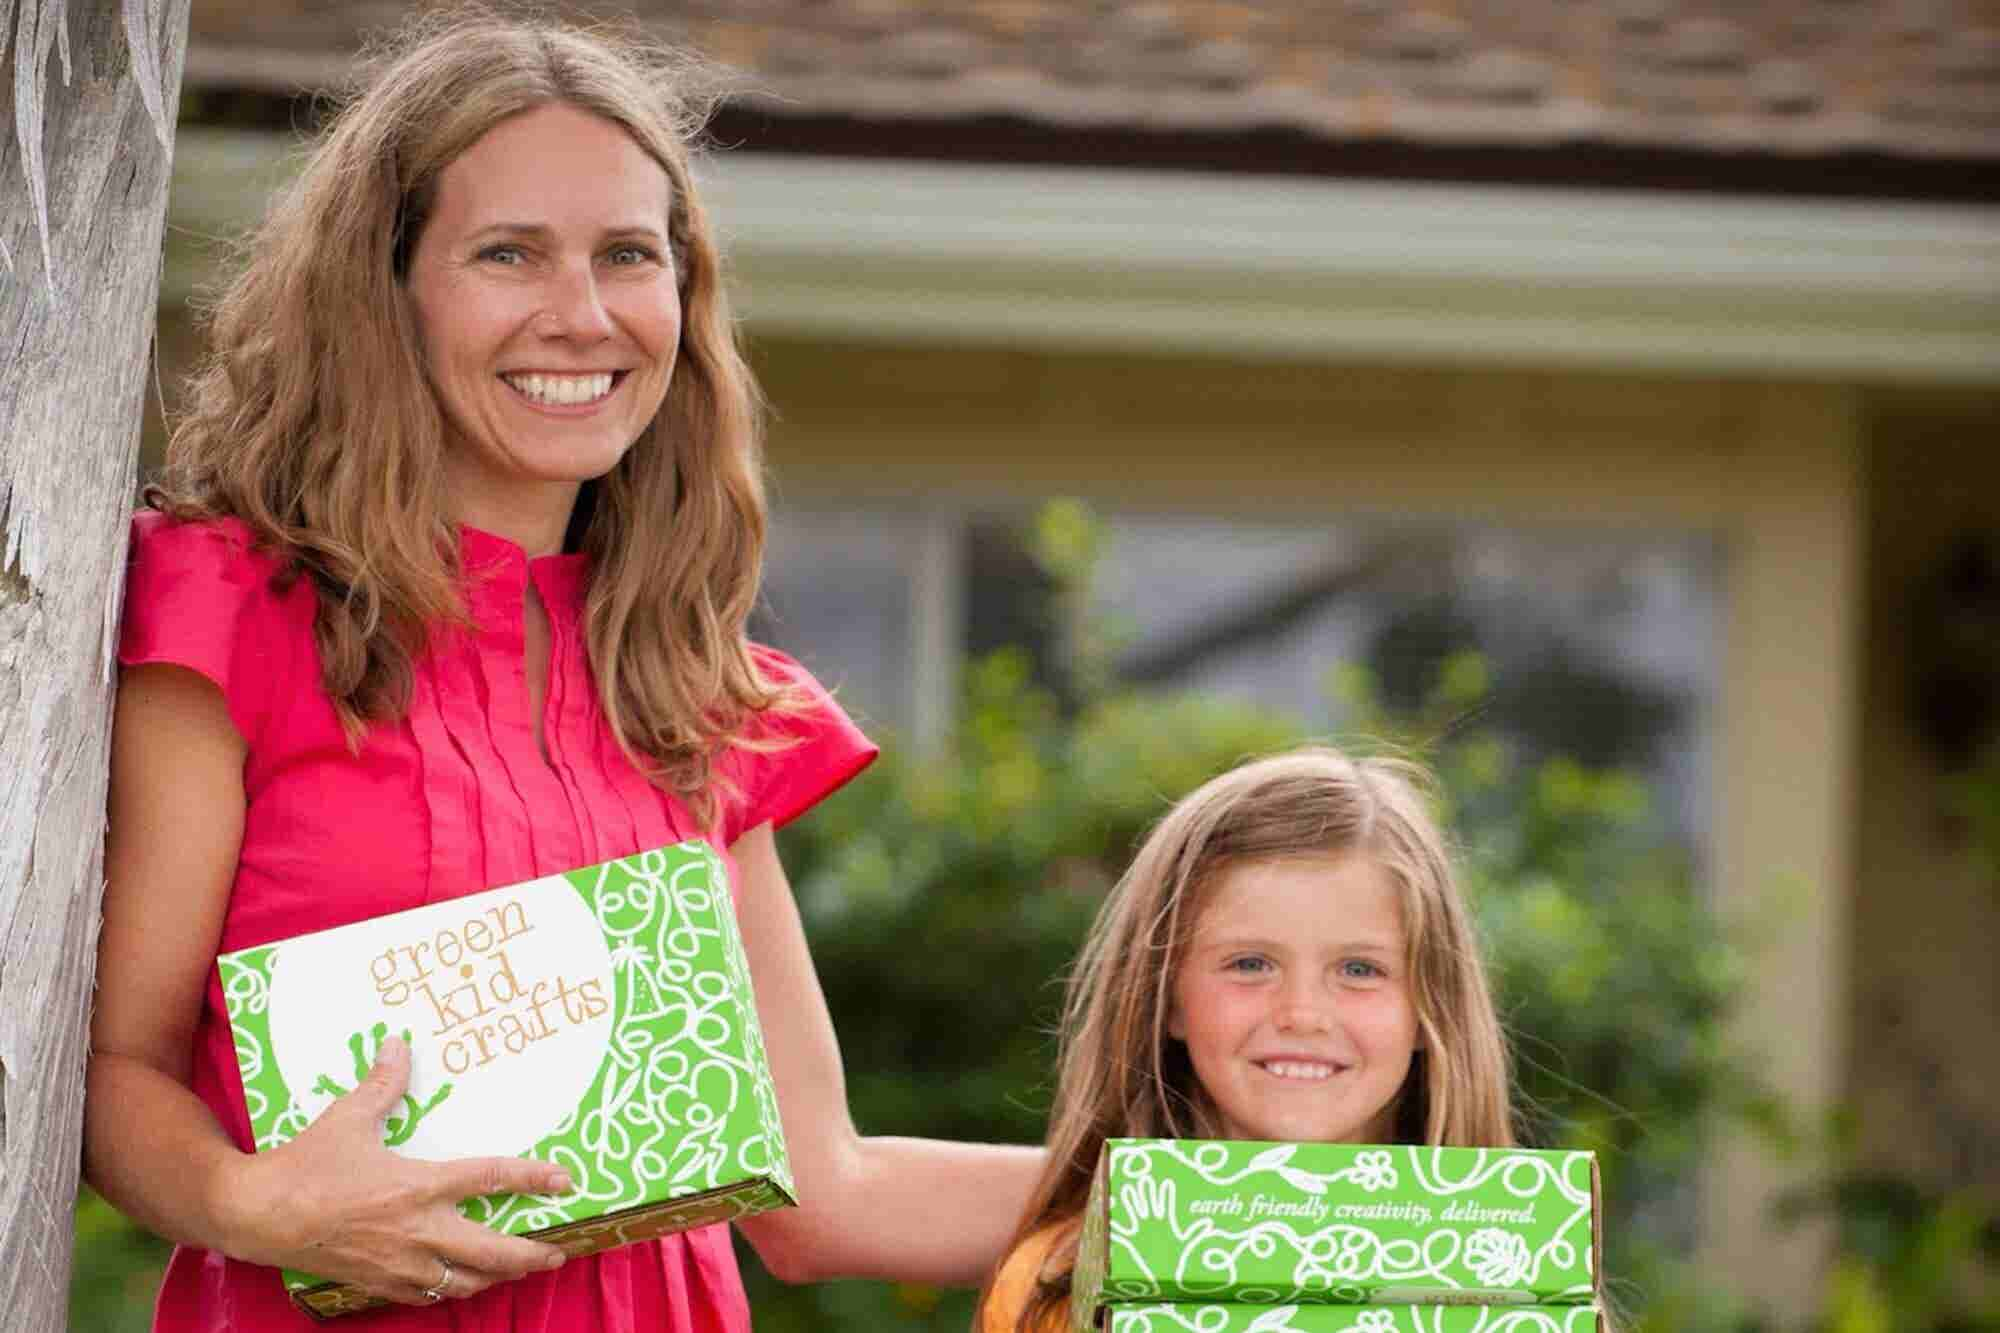 Congratulations to Penny Bauder, Winner of Entrepreneur's 'Build Like a Woman' Contest